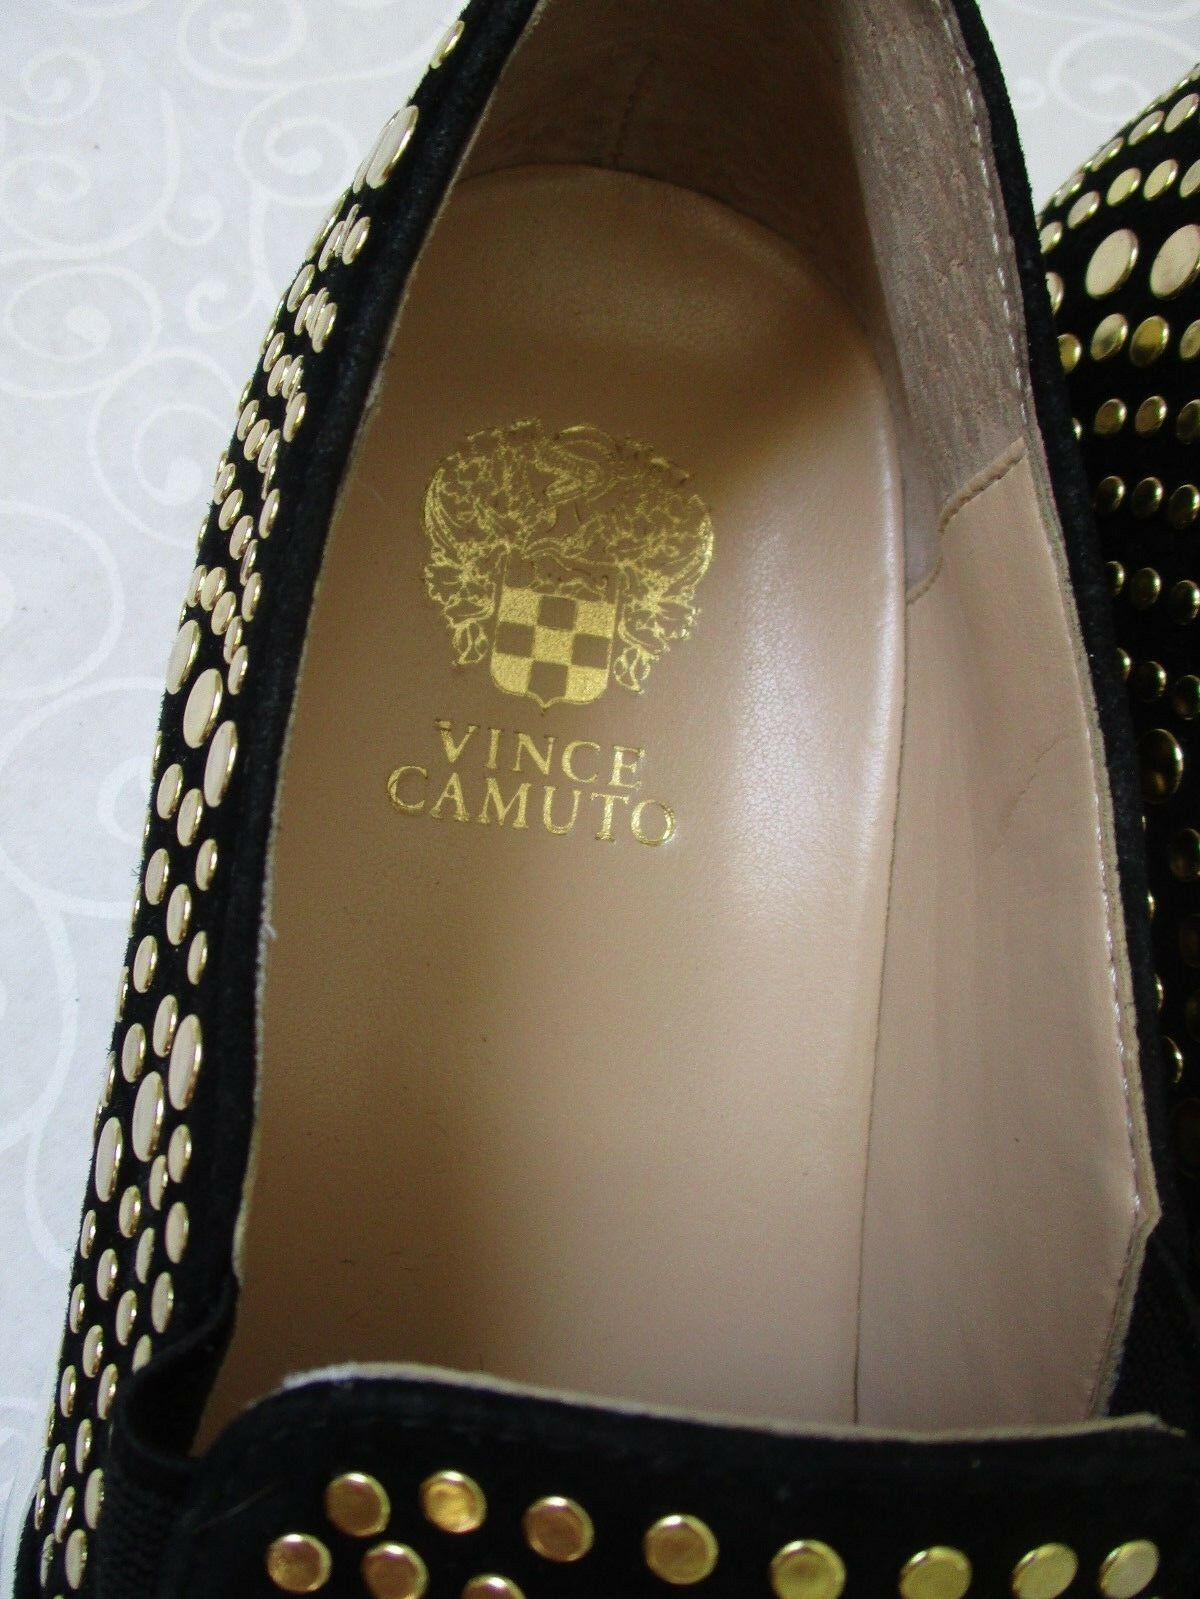 VINCE CAMUTO KINDRA FOXY BLACK/GOLD 8 SILKY LEATHER LOAFERS SIZE 8 BLACK/GOLD 1/2 M - NEW aa4db5